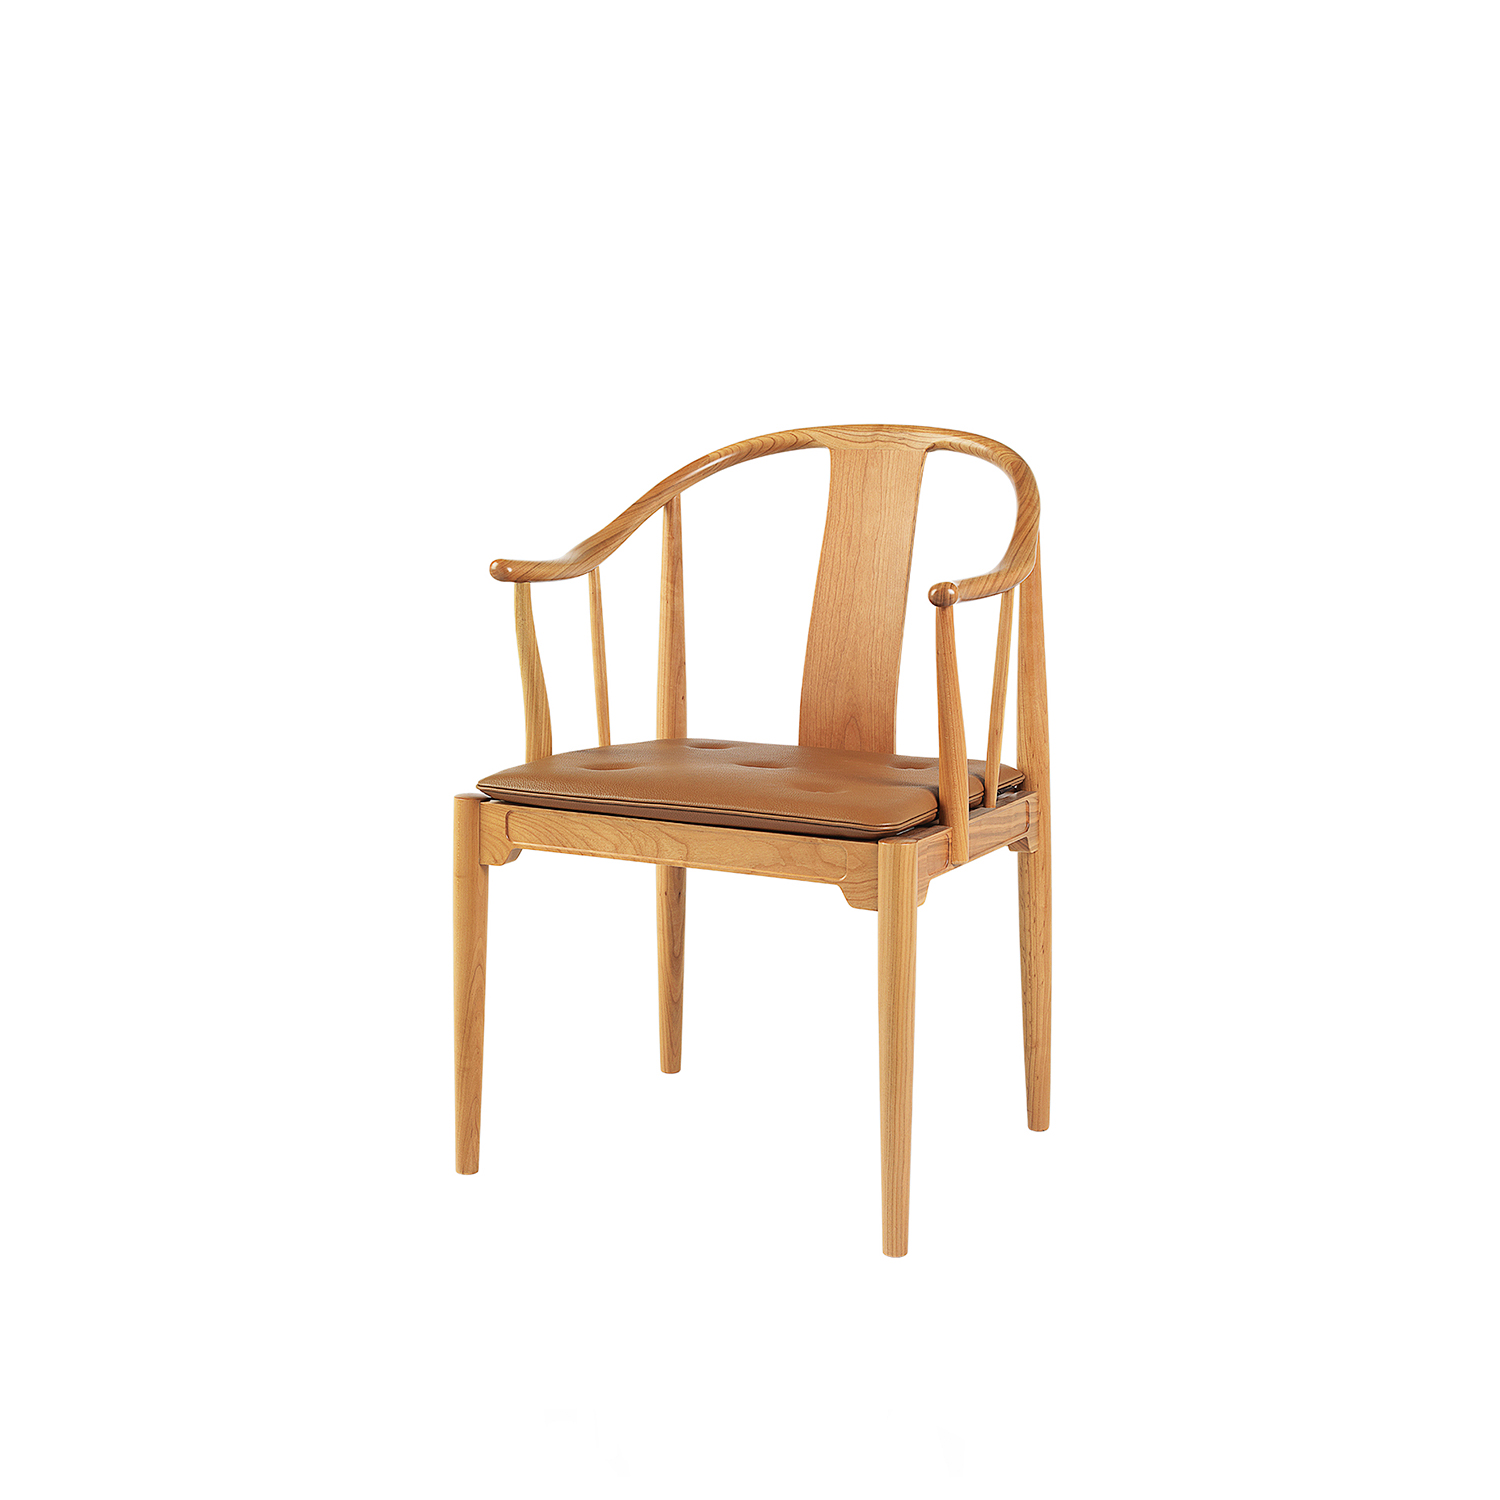 China Armchair - The China Chair™ was designed by Hans J. Wegner, in 1944 and it stands out as the only solid wood chair in the Fritz Hansen collection. Wegner found inspiration for this timeless classic in Chinese chairs from the 17th and 18th Centuries. 